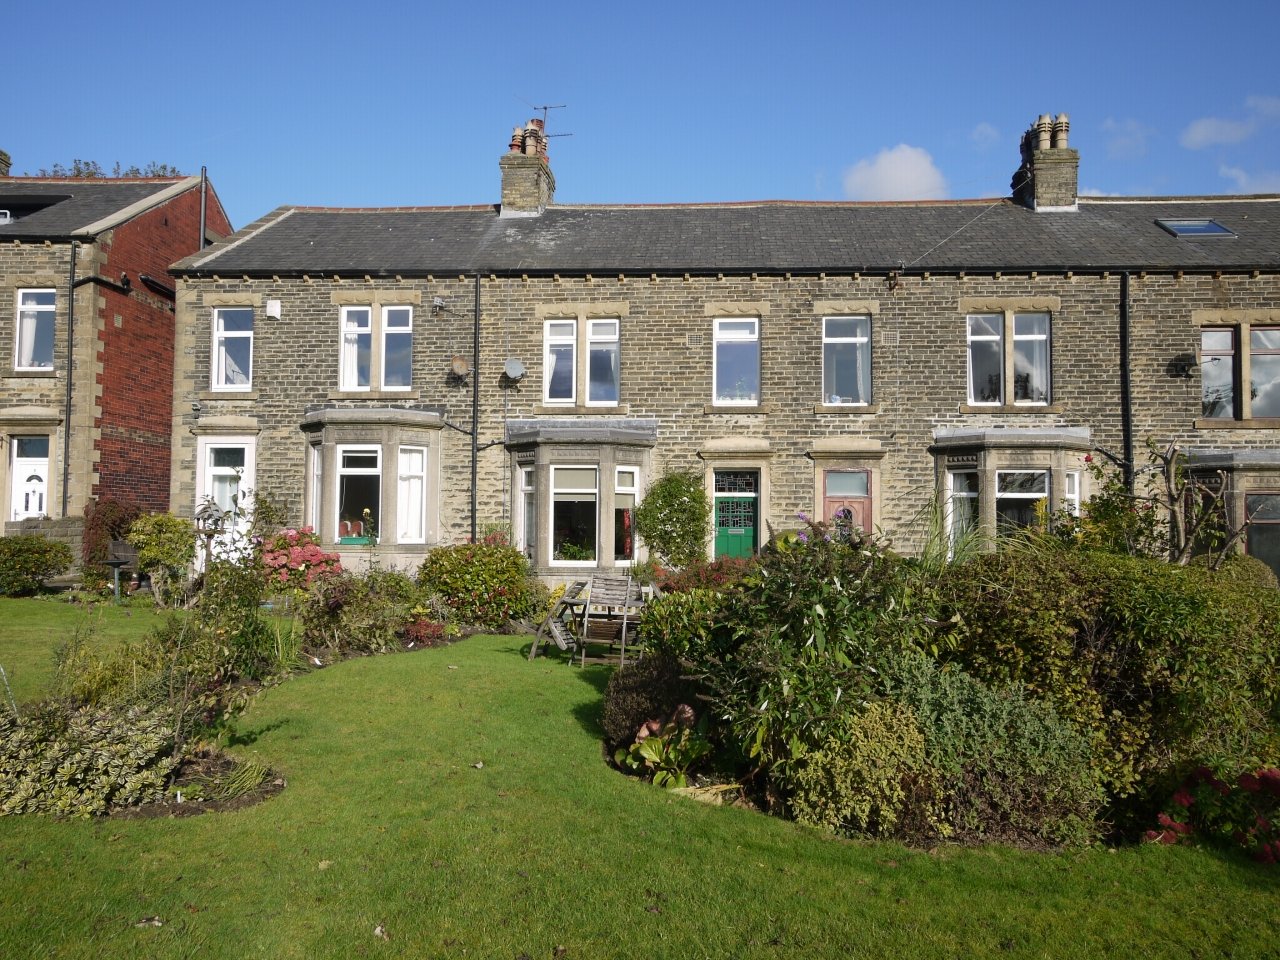 4 bedroom mid terraced house SSTC in Halifax - Photograph 1.